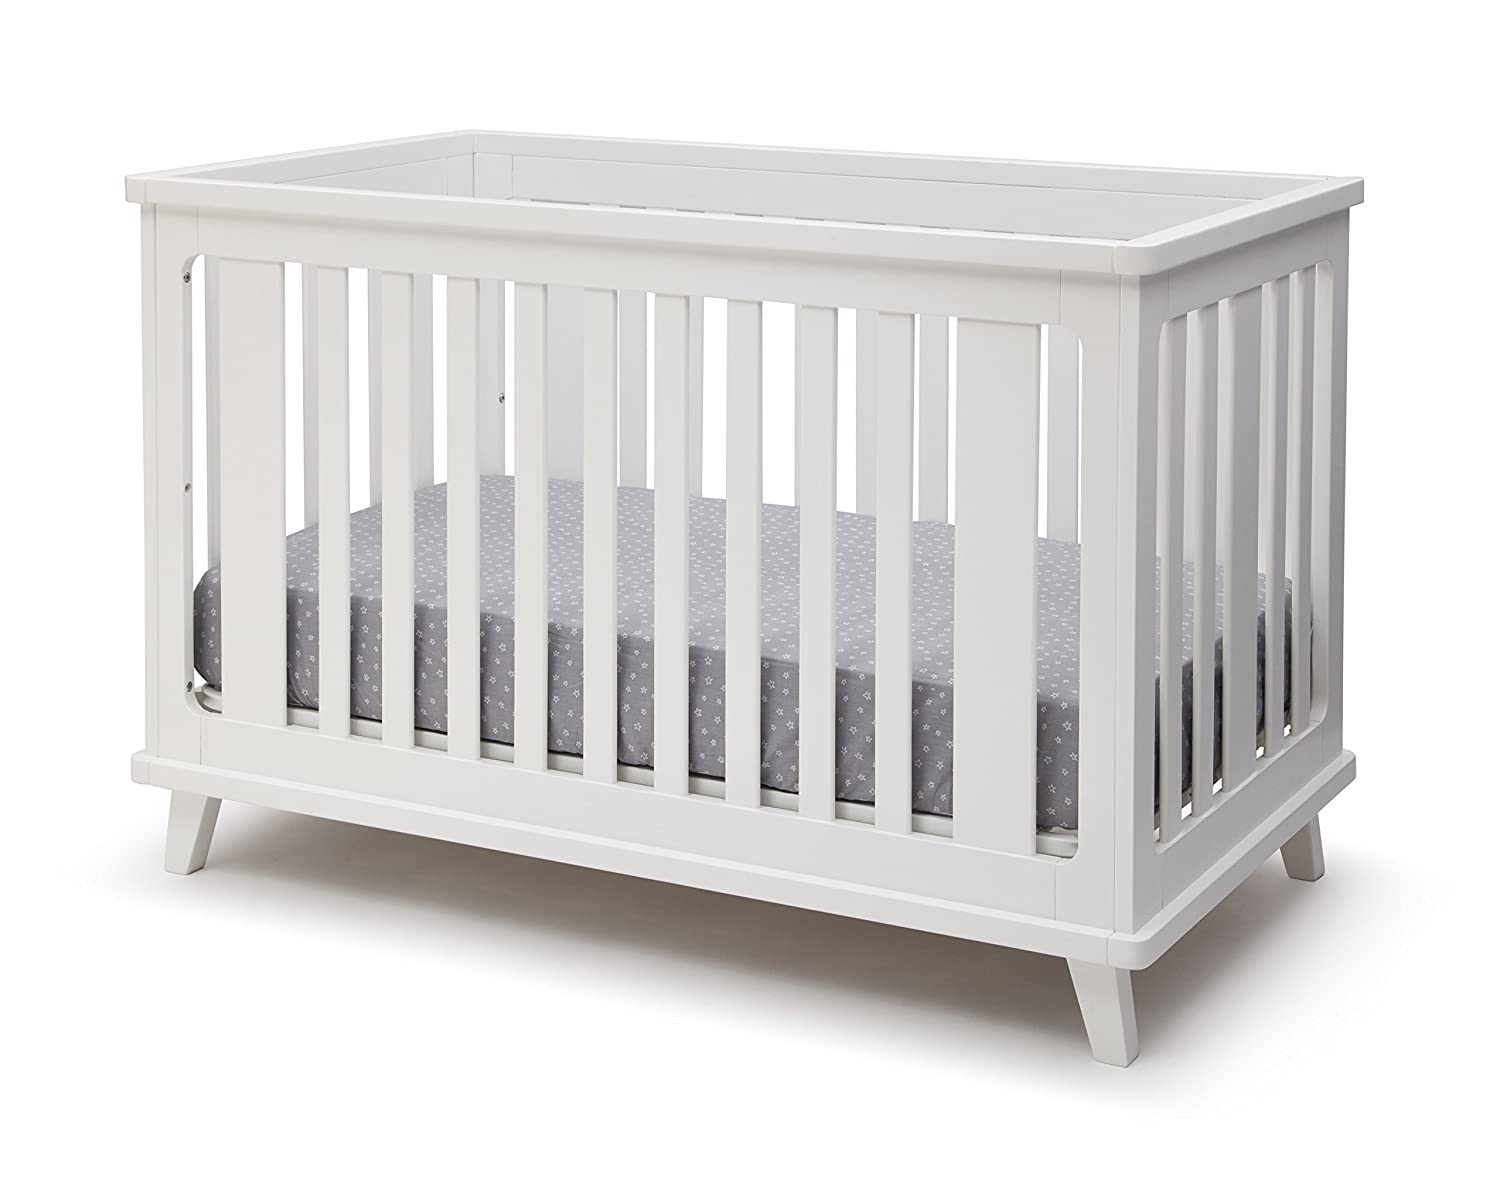 Delta Children Ava 3-in-1 Convertible Baby Crib, White 6801-100